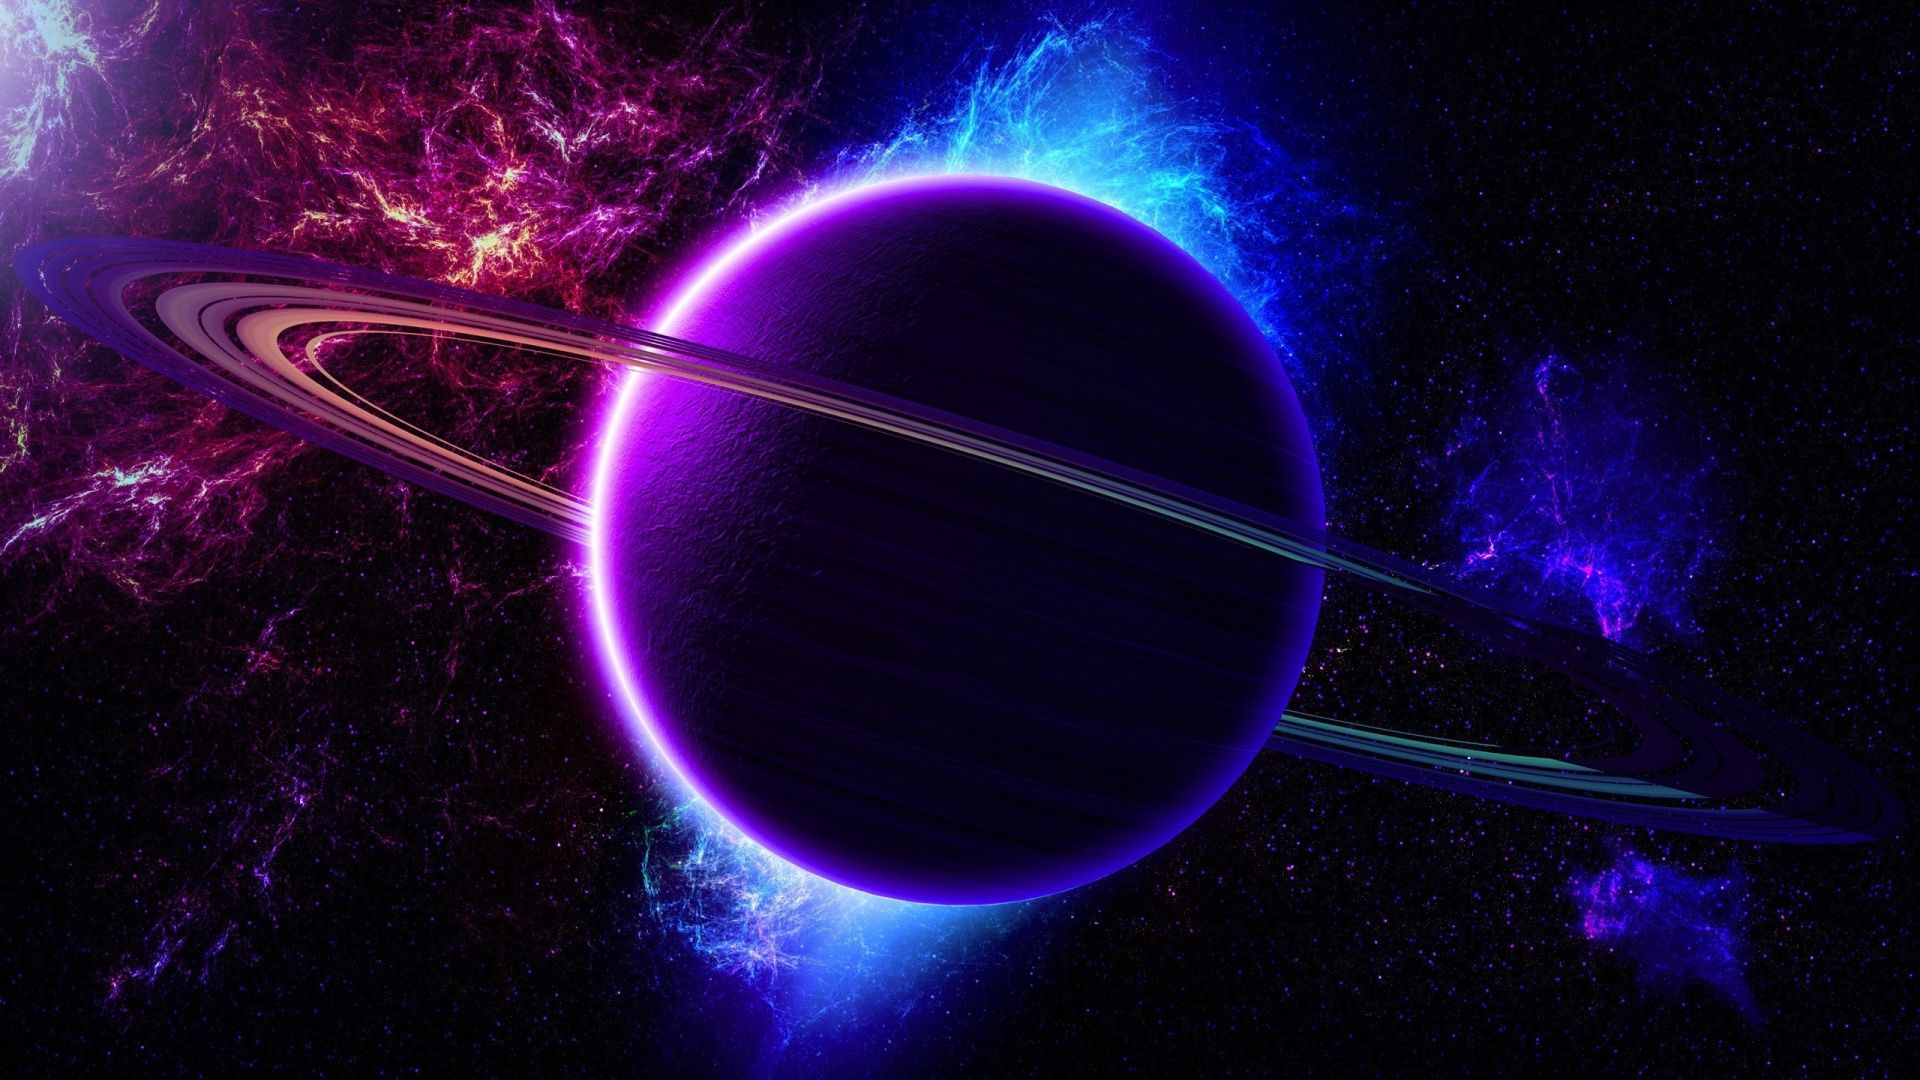 Colorful Galaxy View In 2020 Planets Blue Colour Wallpaper Saturn